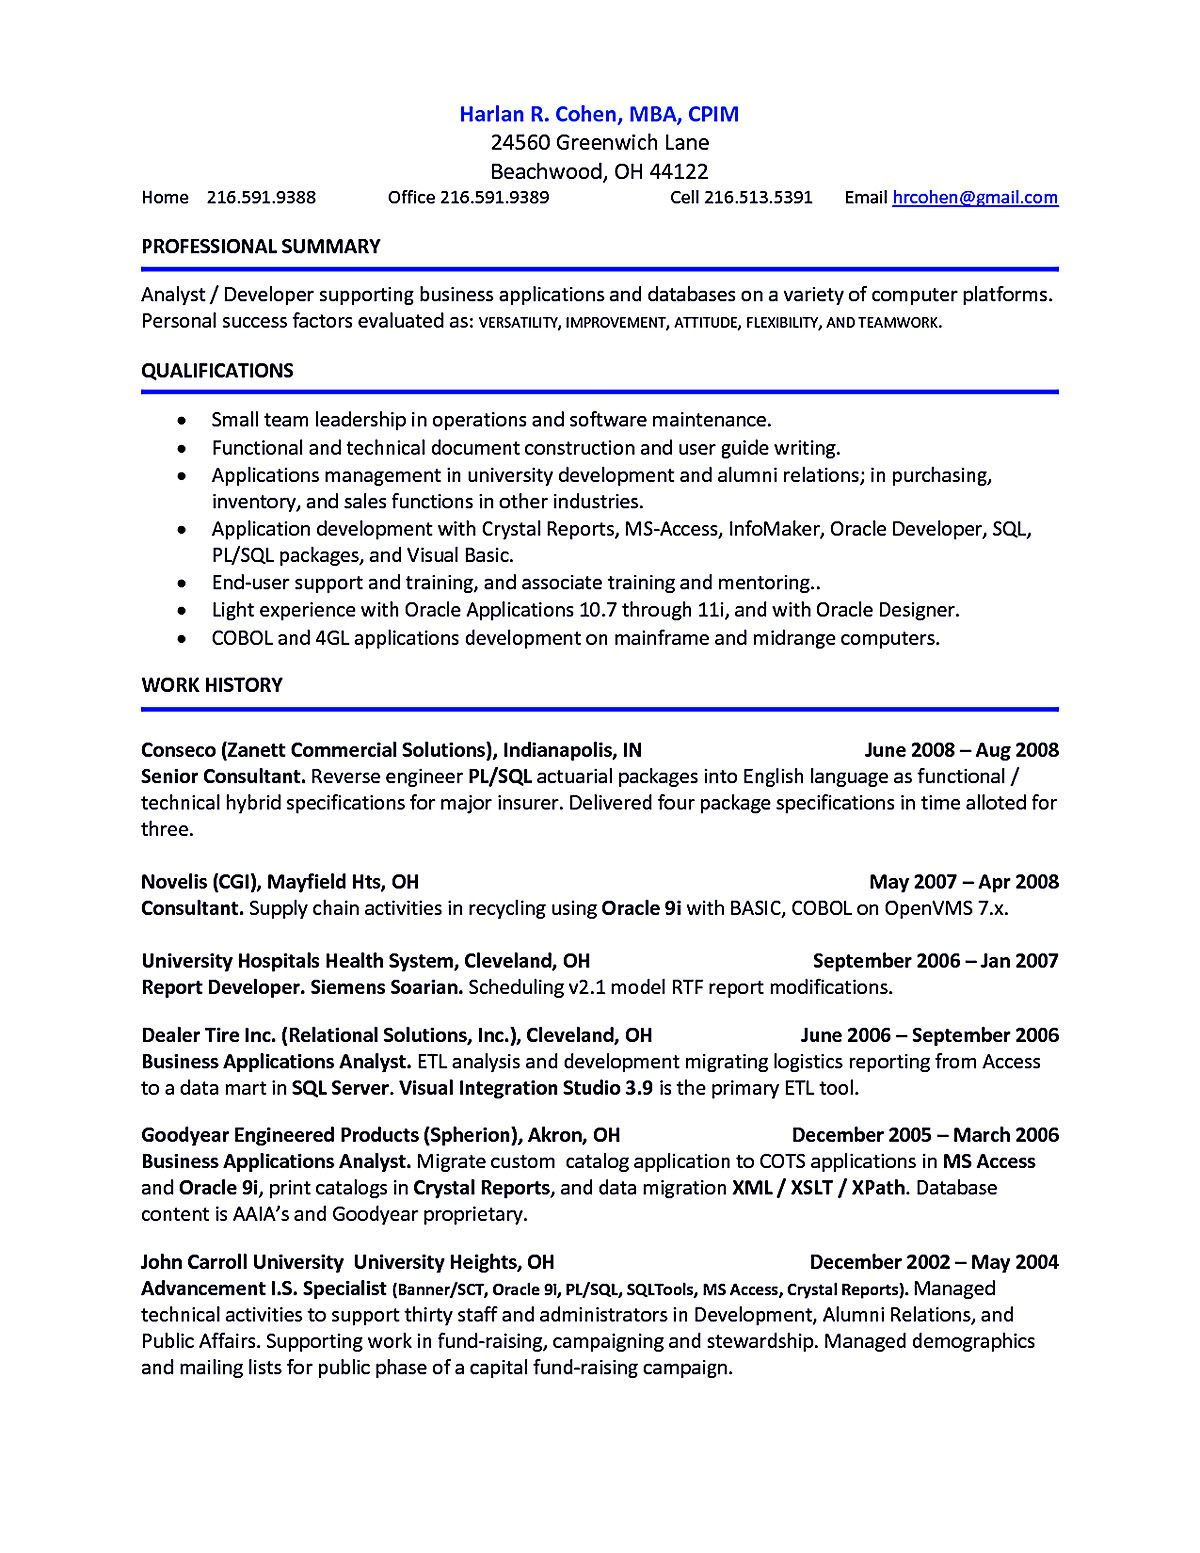 Account Payable Resume Account Receivable Resume Shows Both Technical And Interpersonal